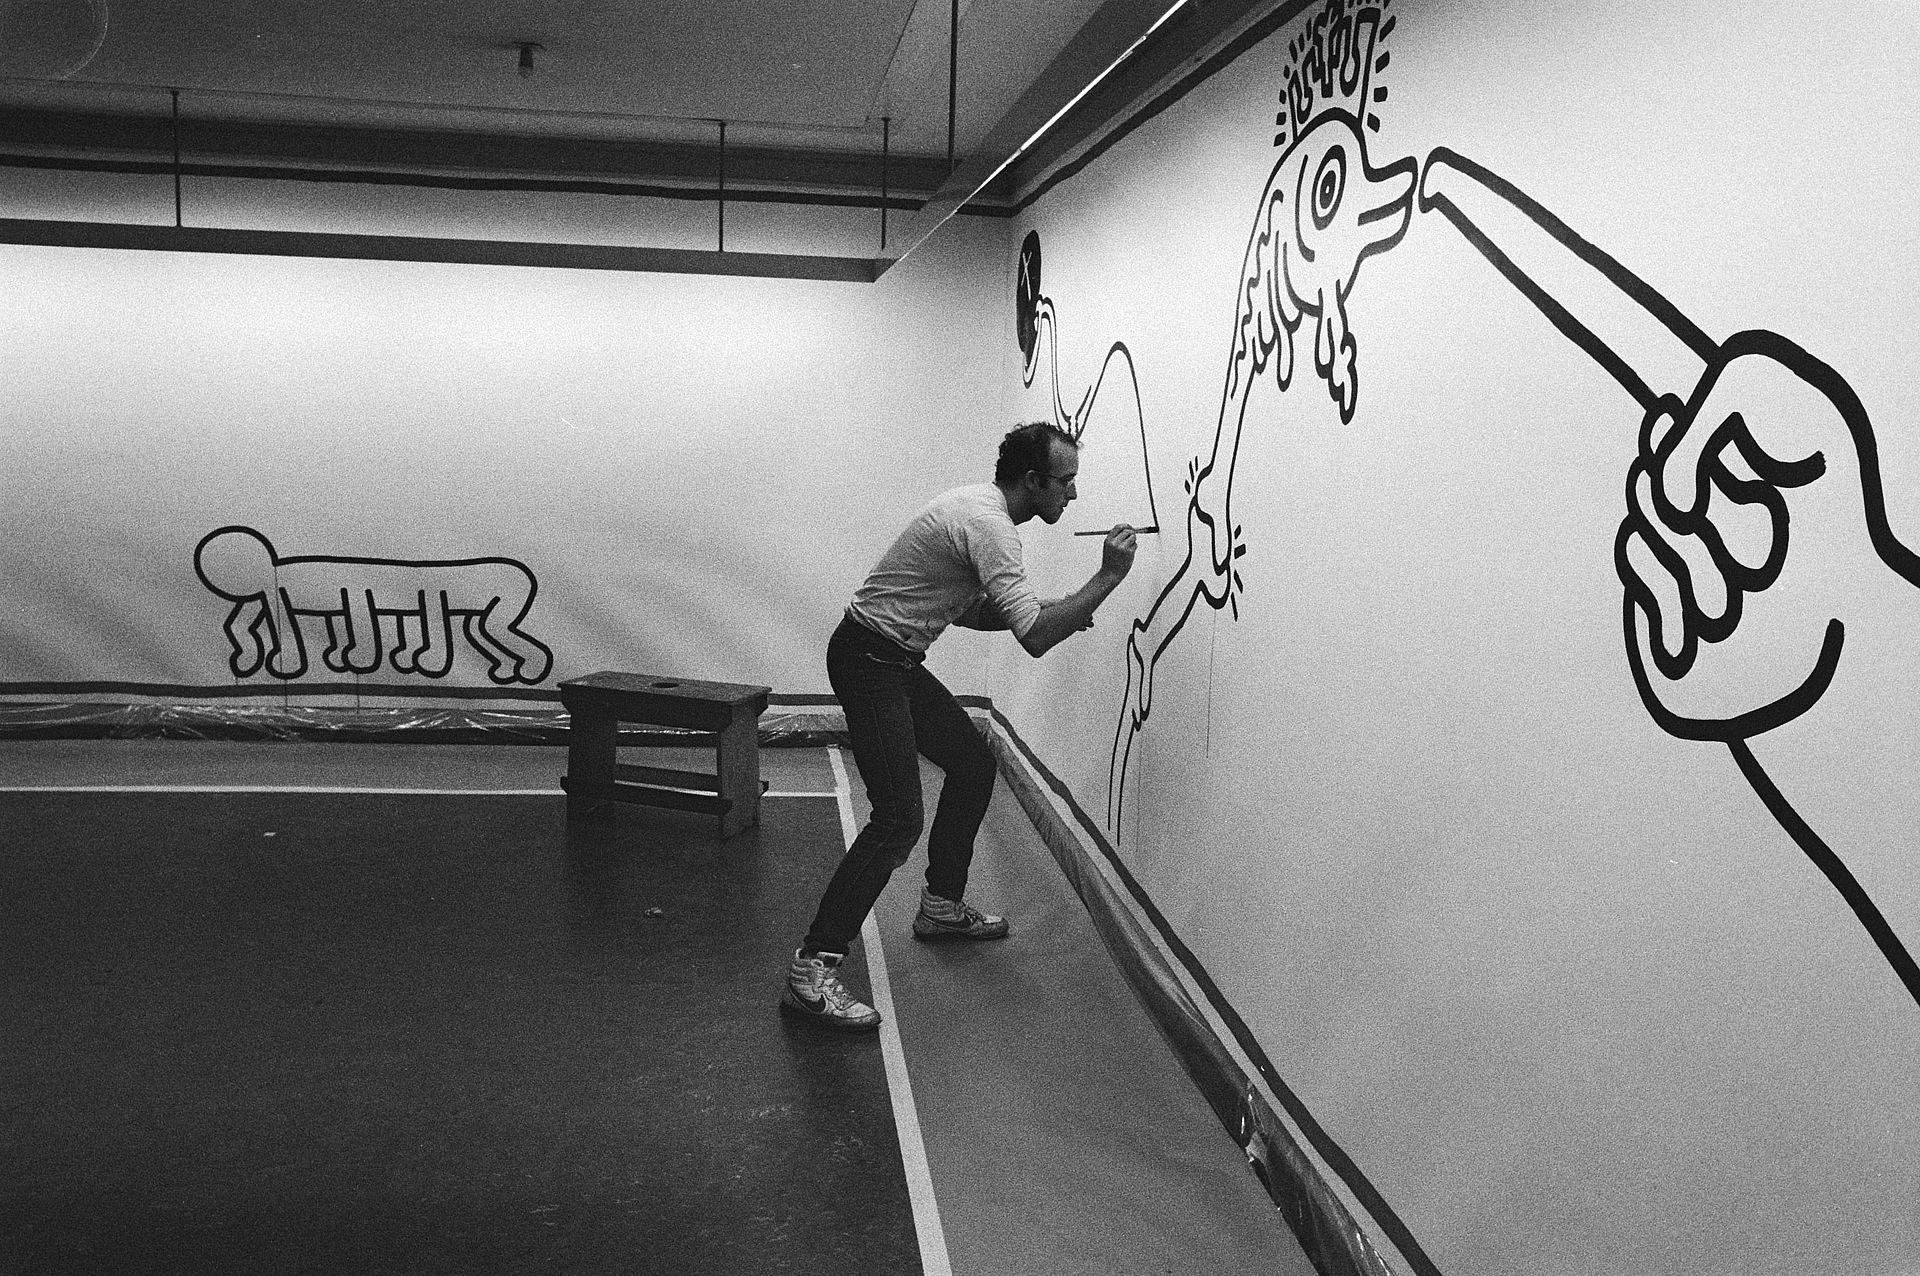 Keith Haring at work in Stedelijk Museum, Amsterdam 1986 Creative Commons